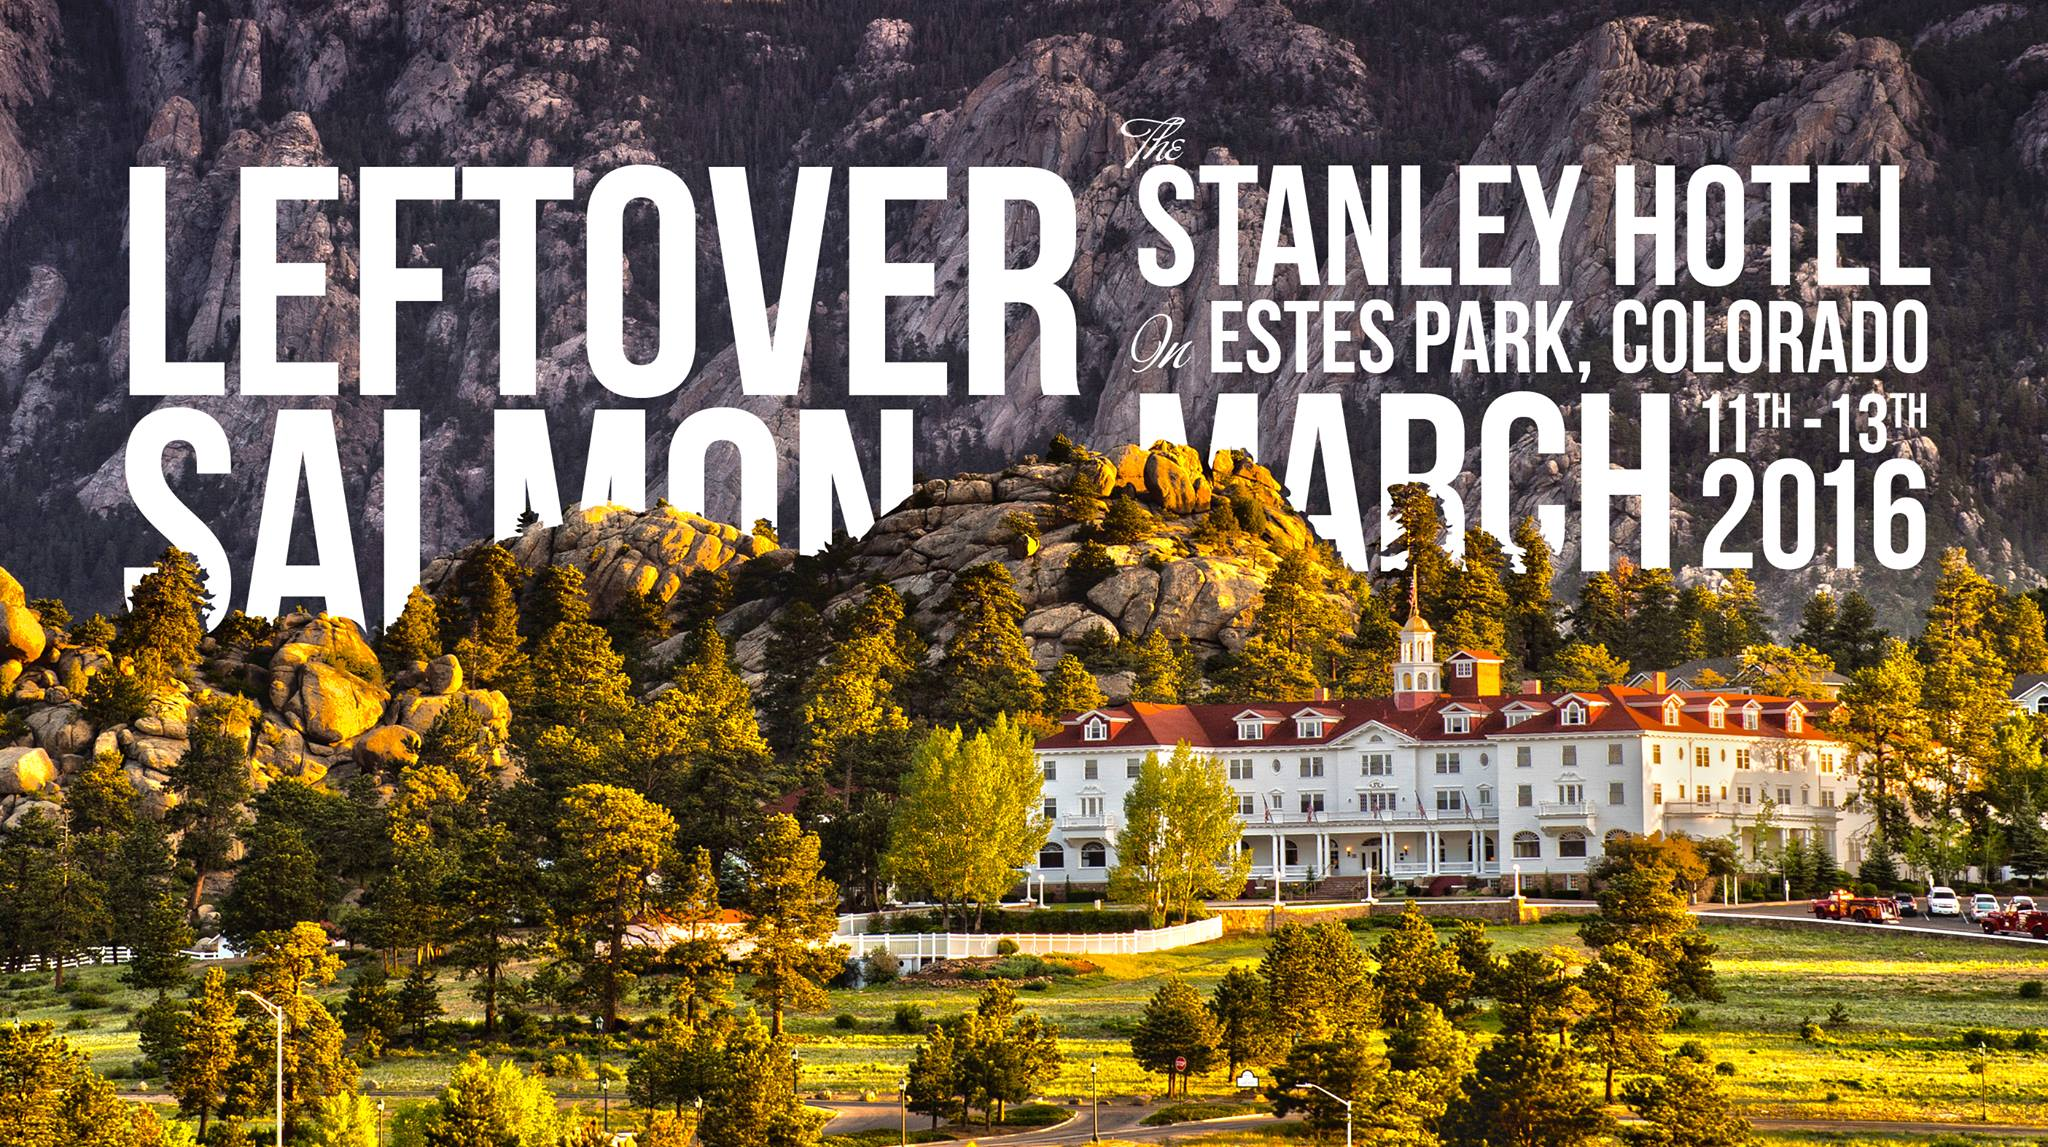 Leftover Salmon SOLD OUT Stanley Hotel Run